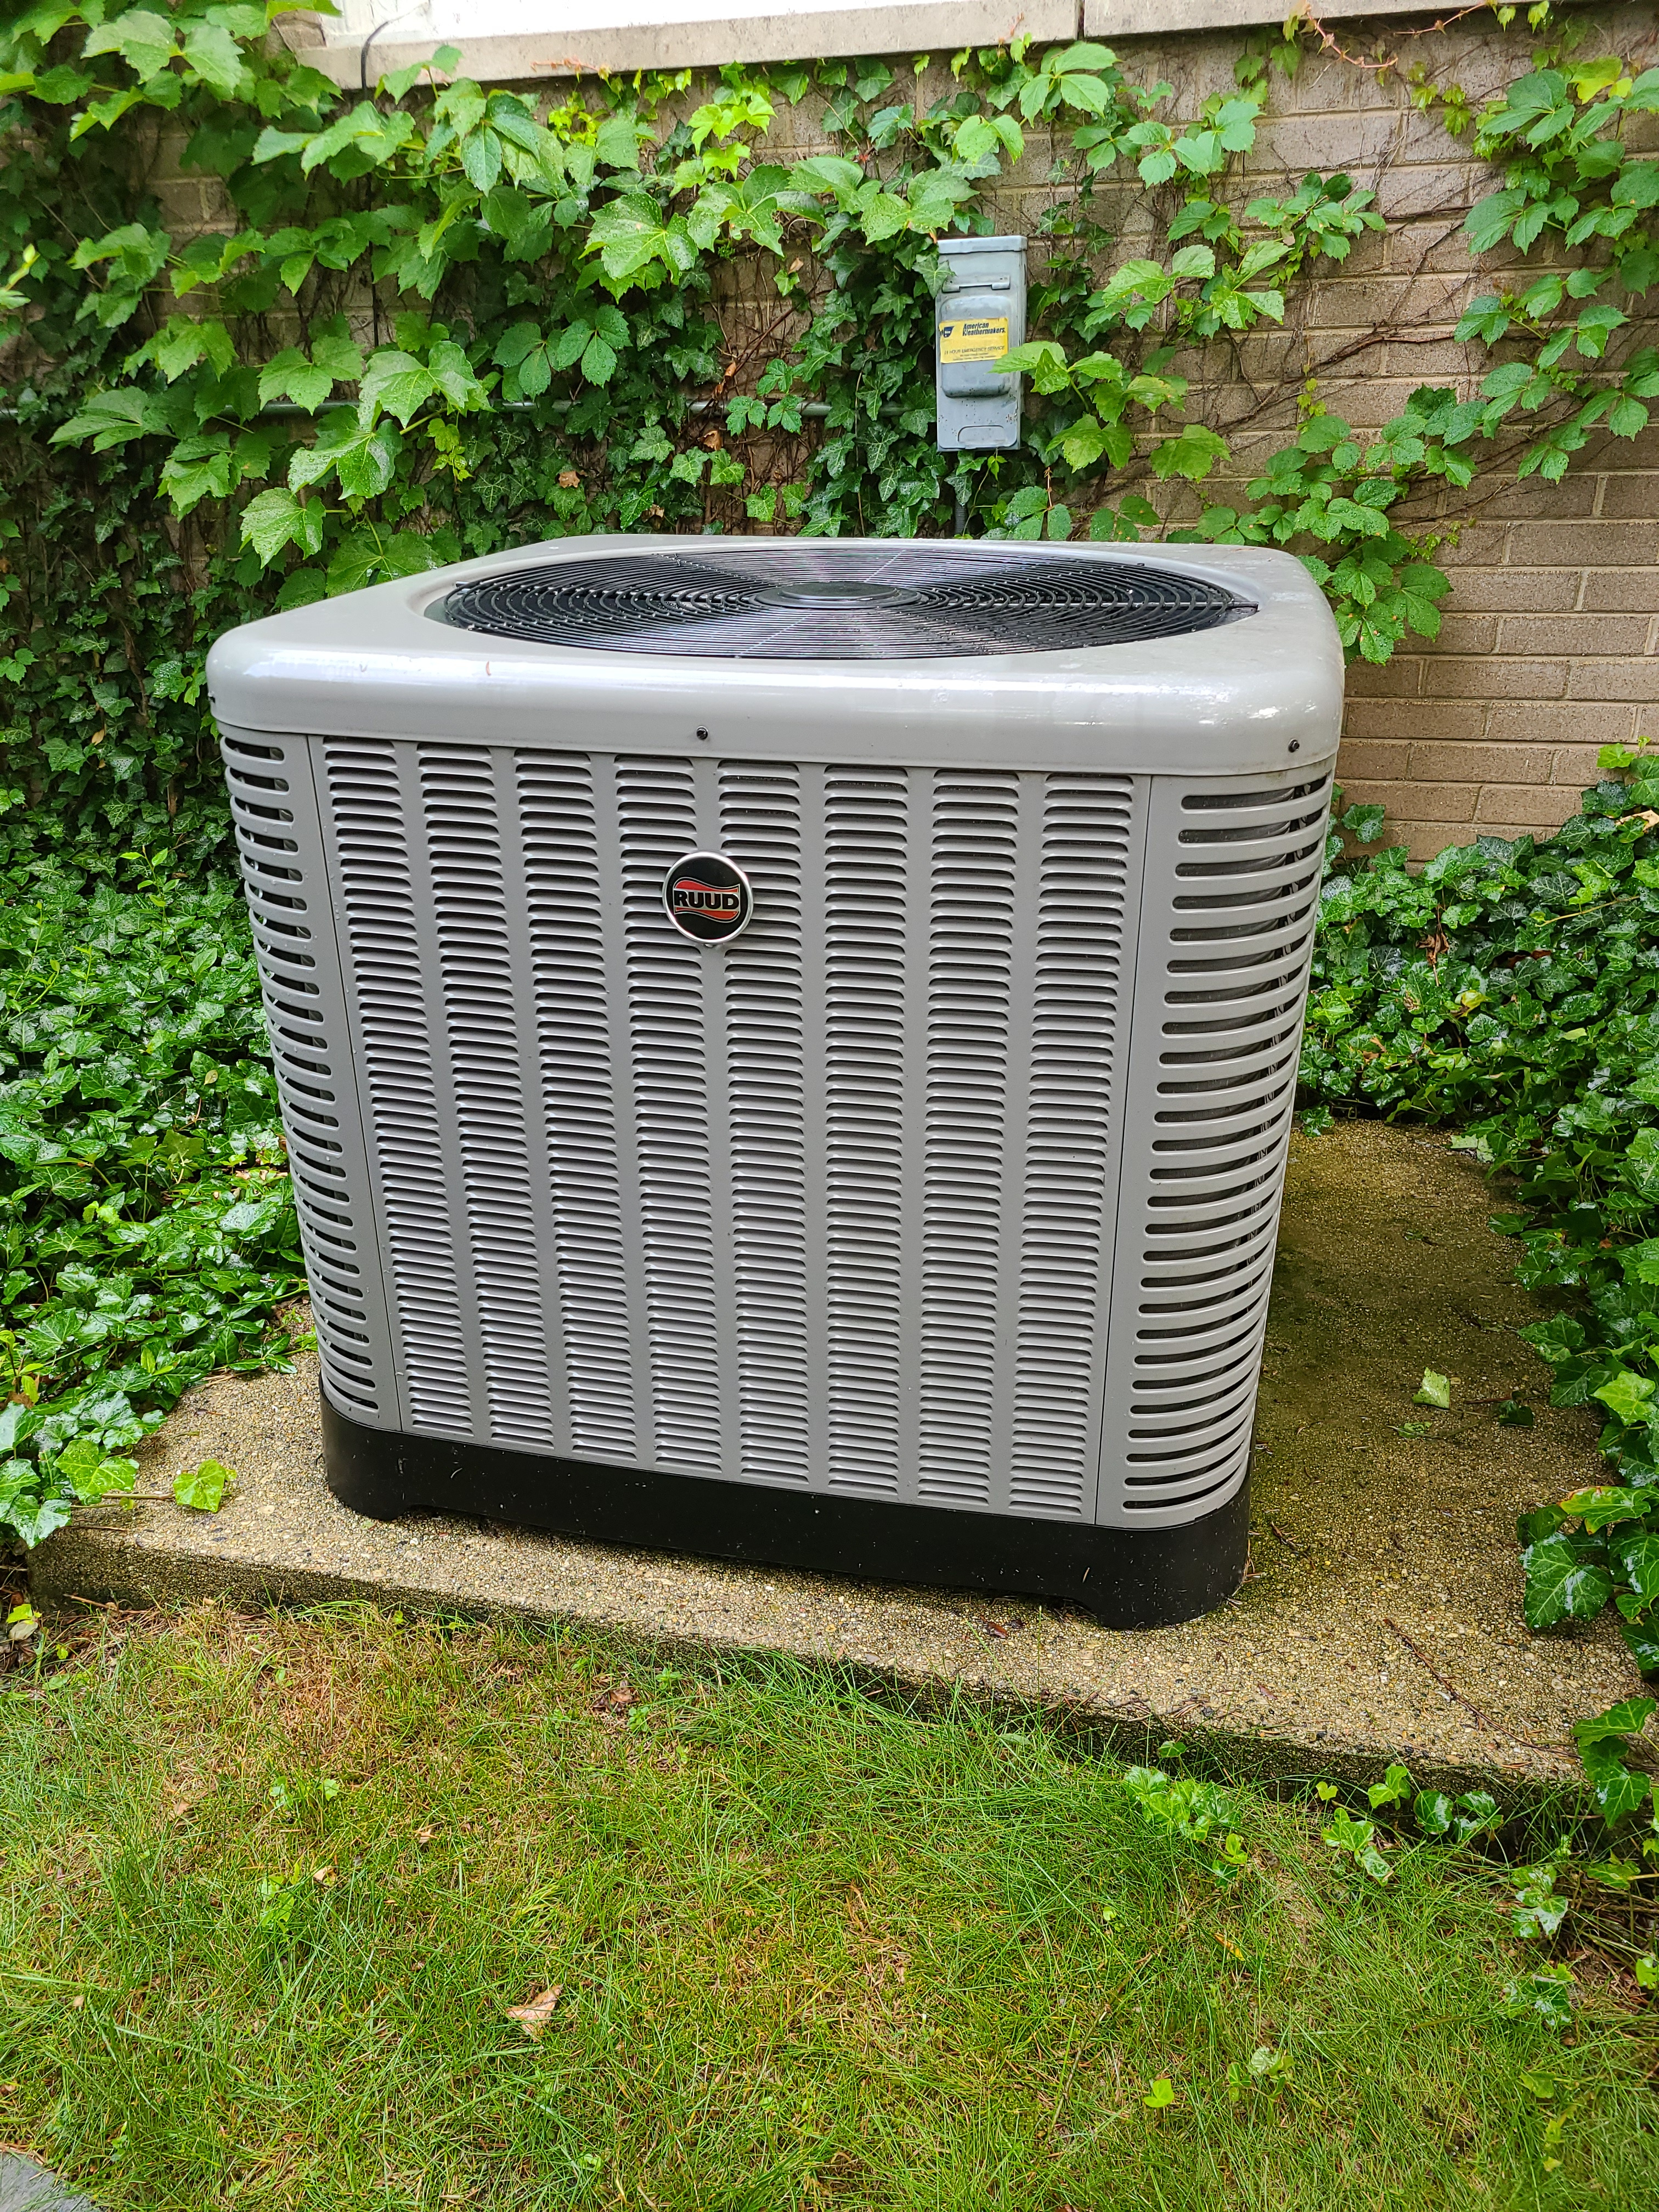 Make sure your Ruud is ready for your summer indoors and schedule a maintenance with American Weathermakers today.